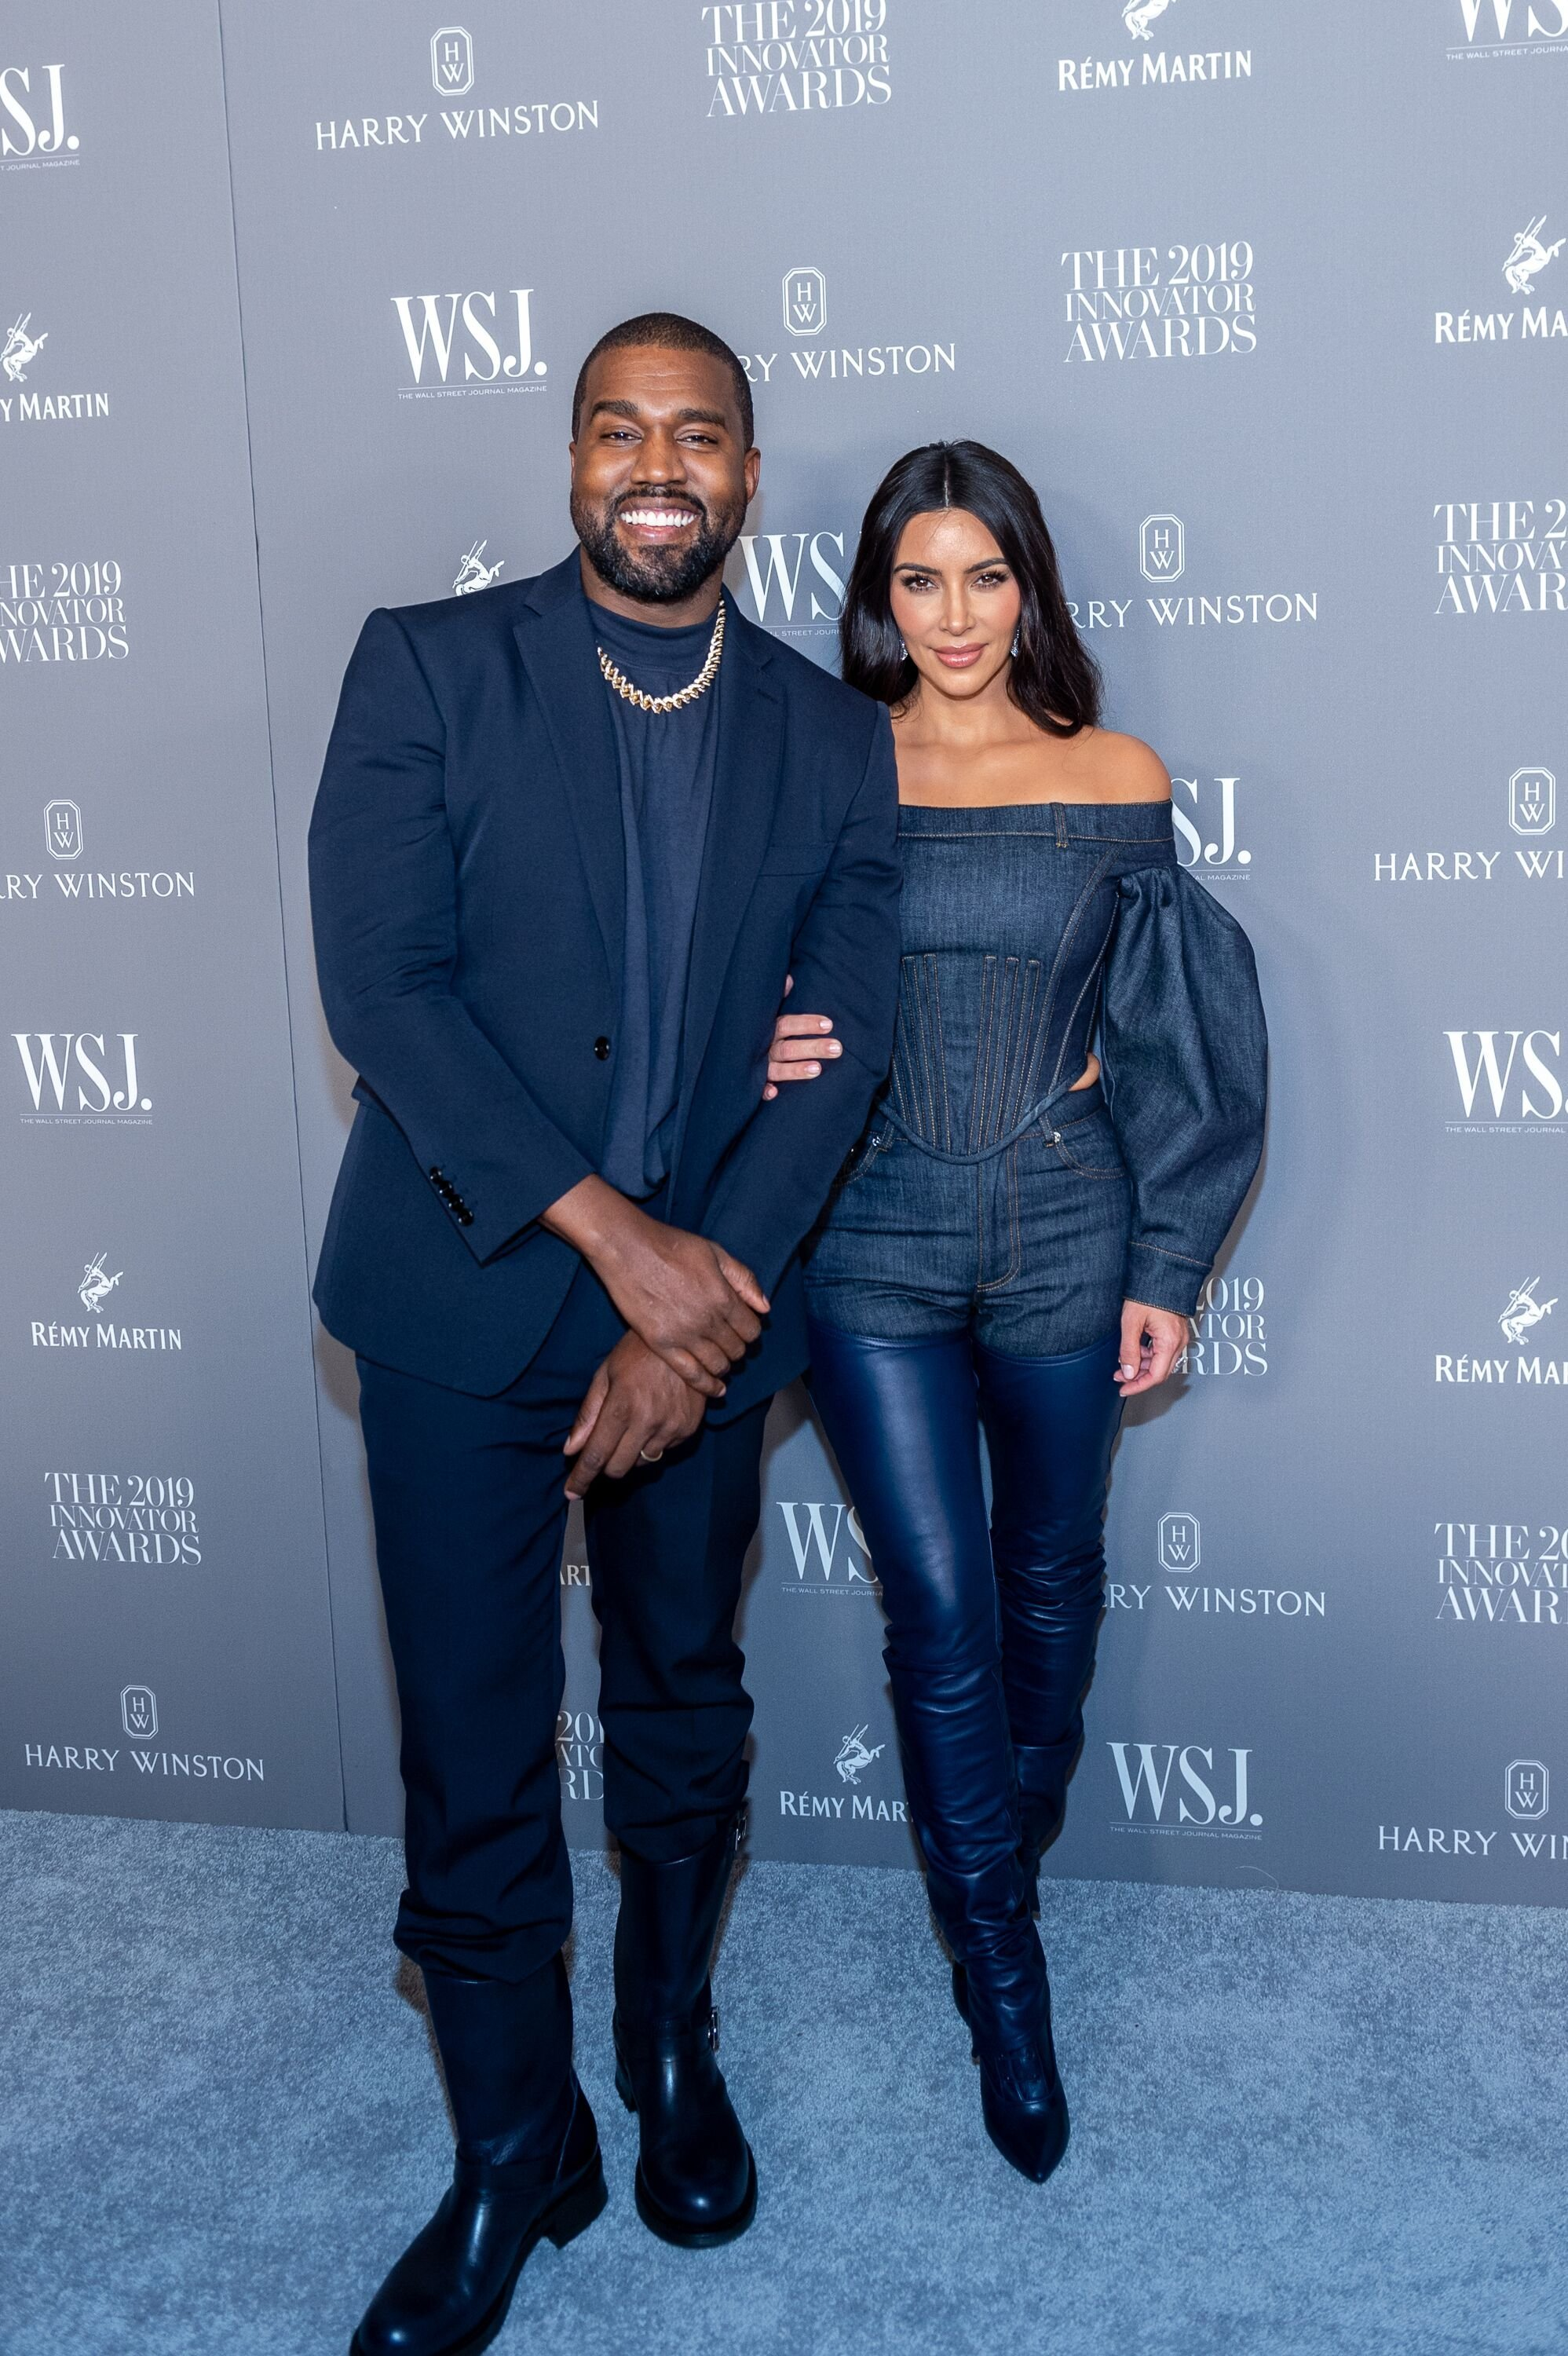 Kanye West and Kim Kardashian at the WSJ Mag Innovator Awards on November 06, 2019, in New York City | Photo: Mark Sagliocco/WireImage/Getty Images